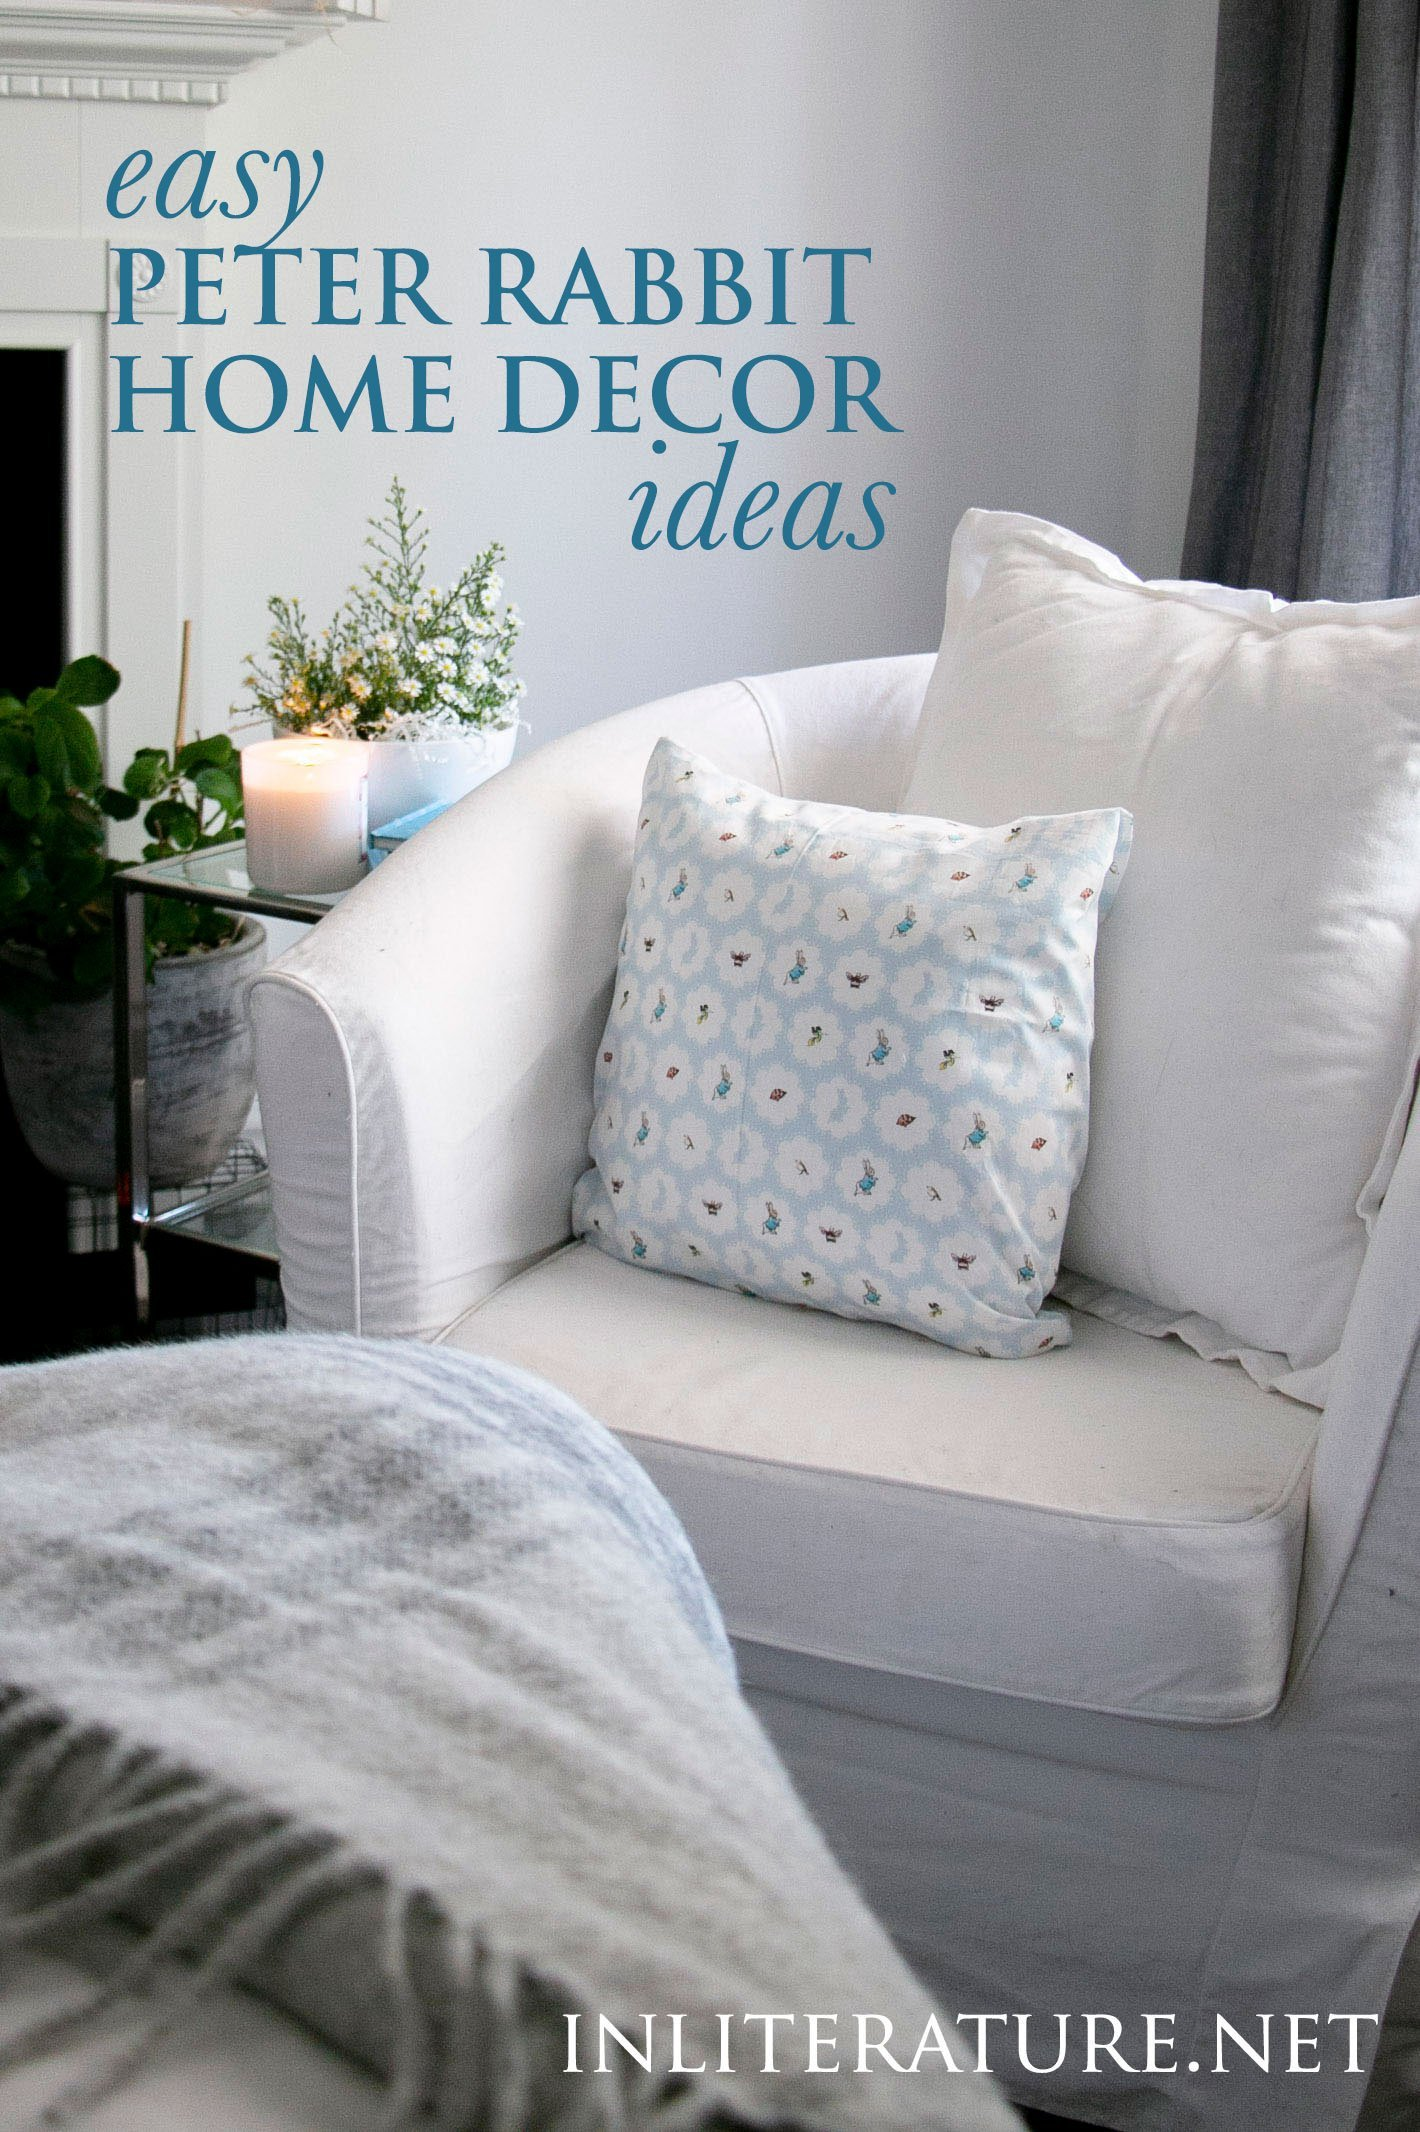 Easy Peter Rabbit Inspired Home Decor Ideas In Literature